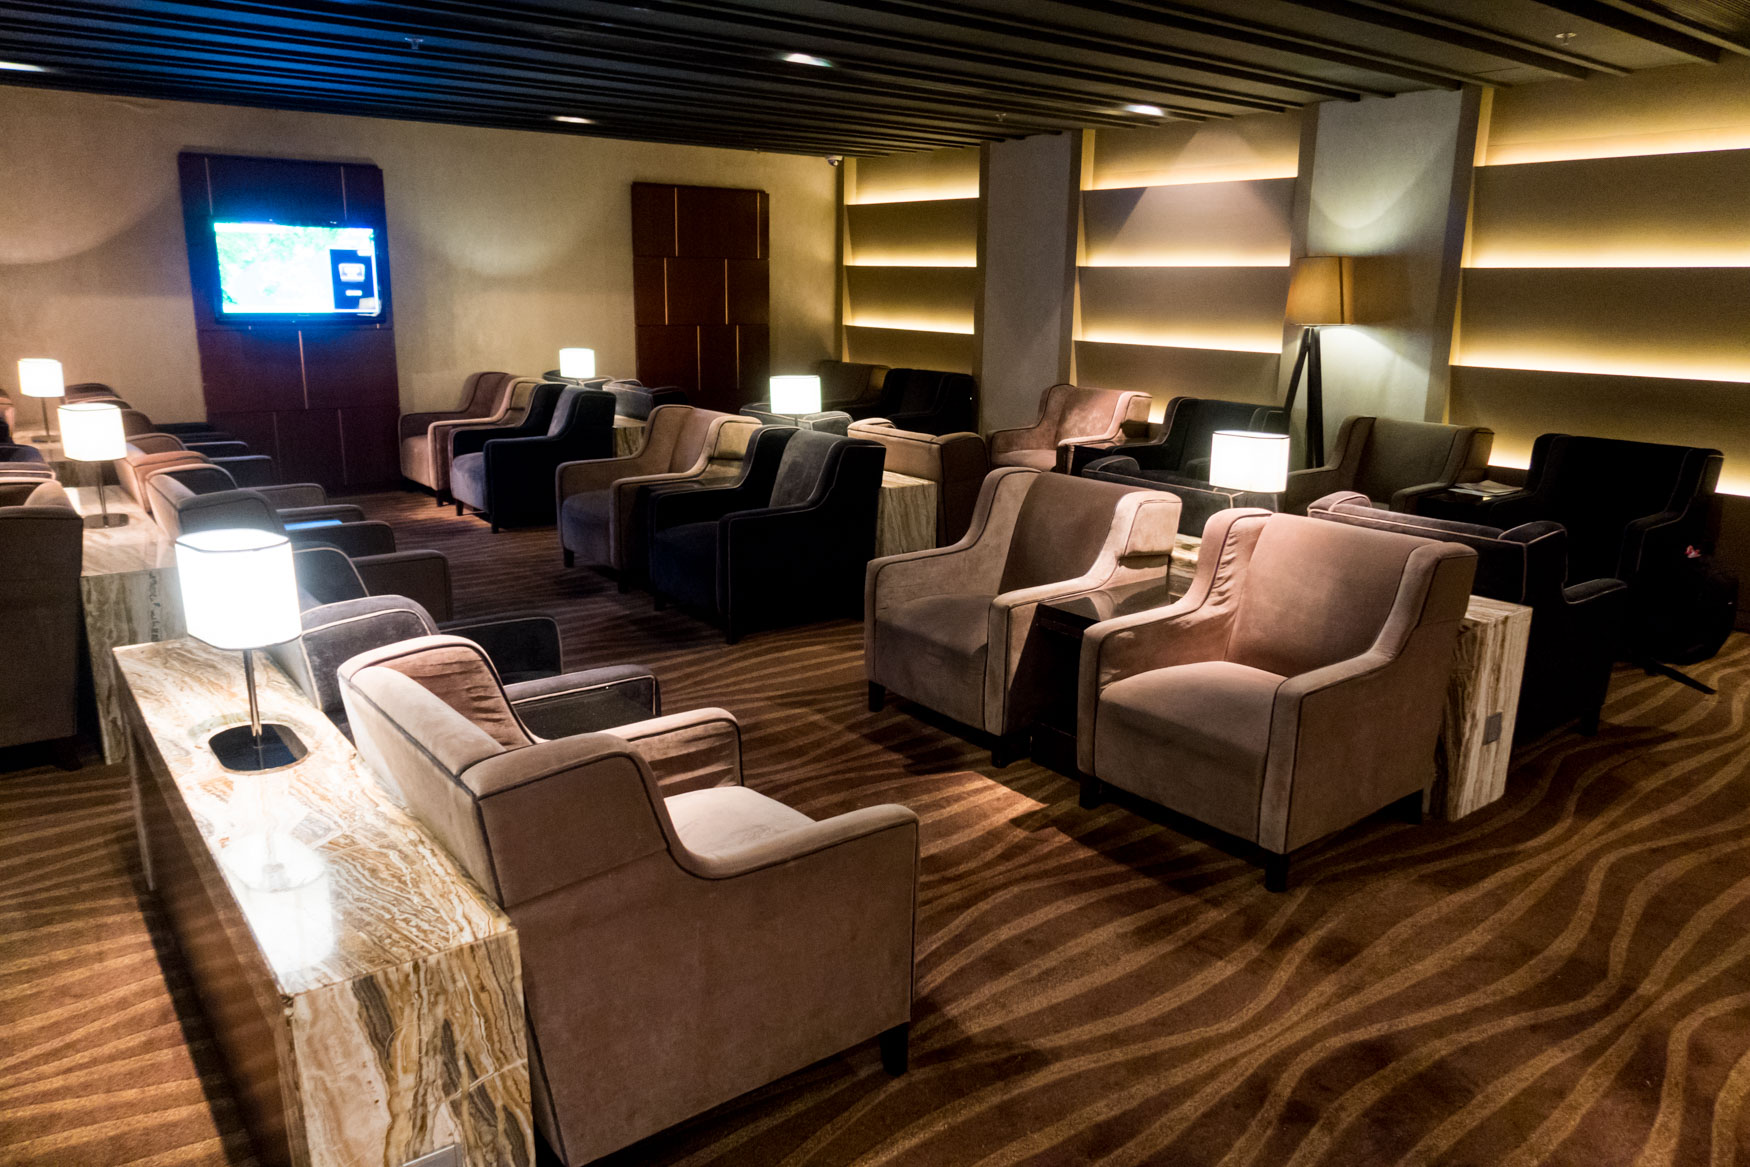 Plaza Premium Lounge Hong Kong East Hall Lounging Area